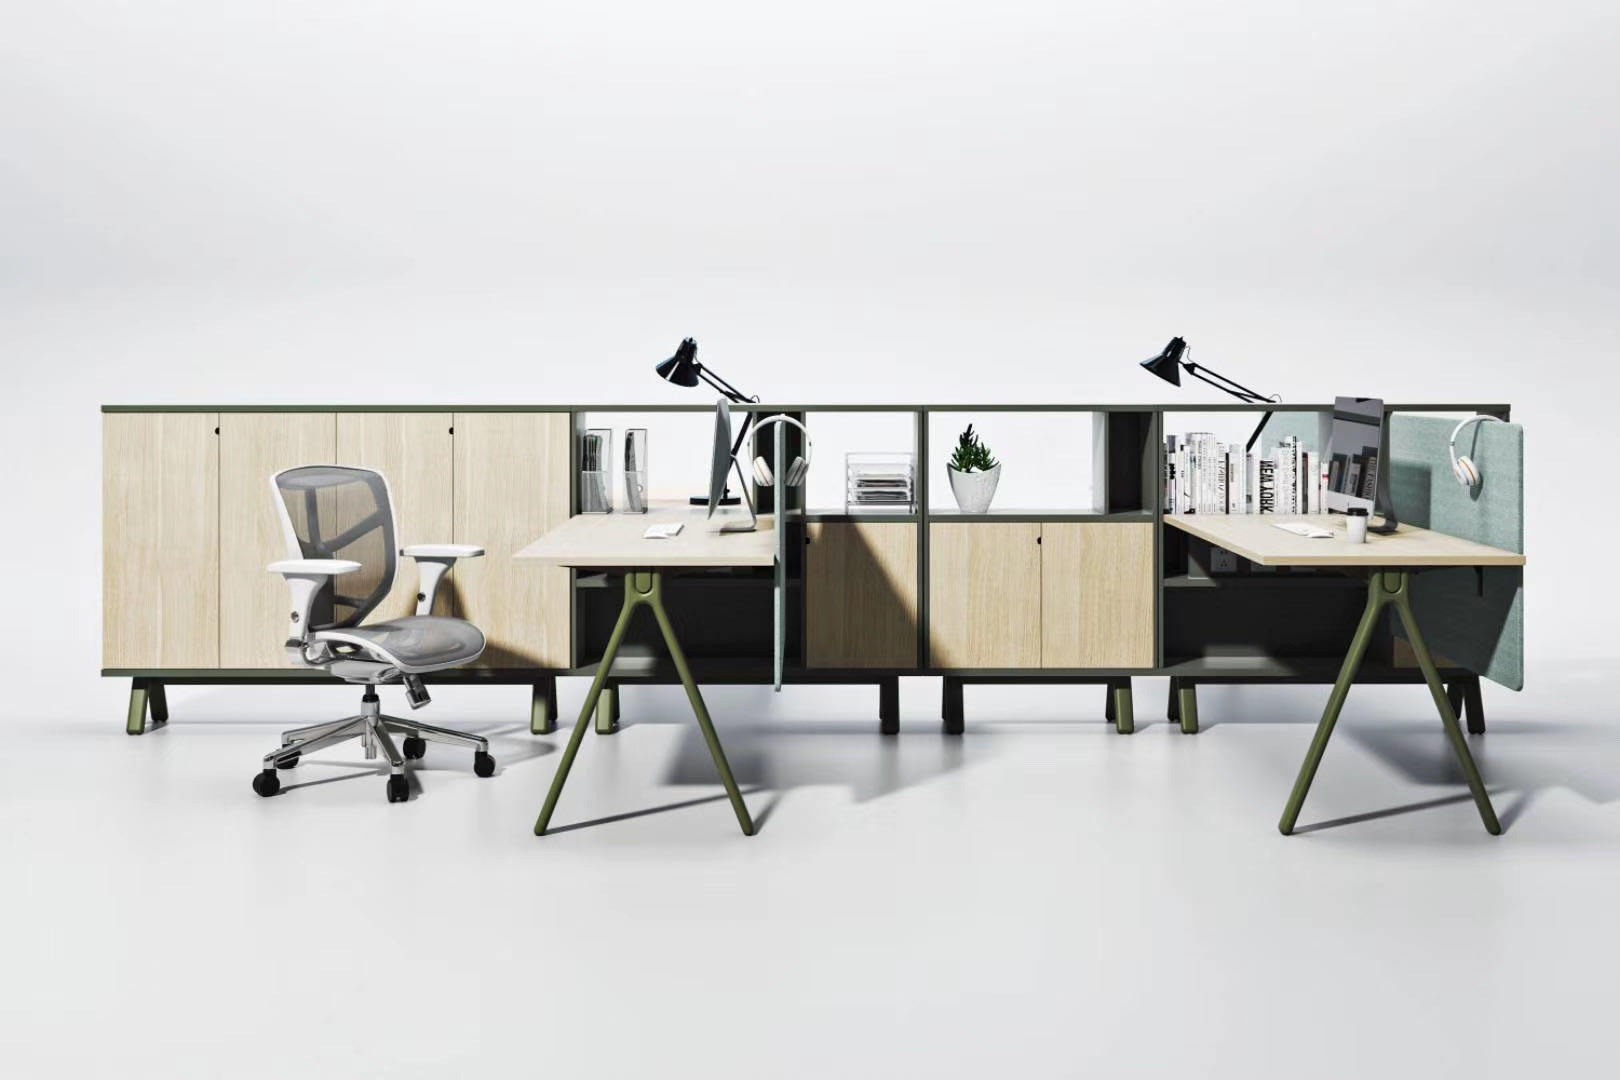 Best desks for home use for business for office-1